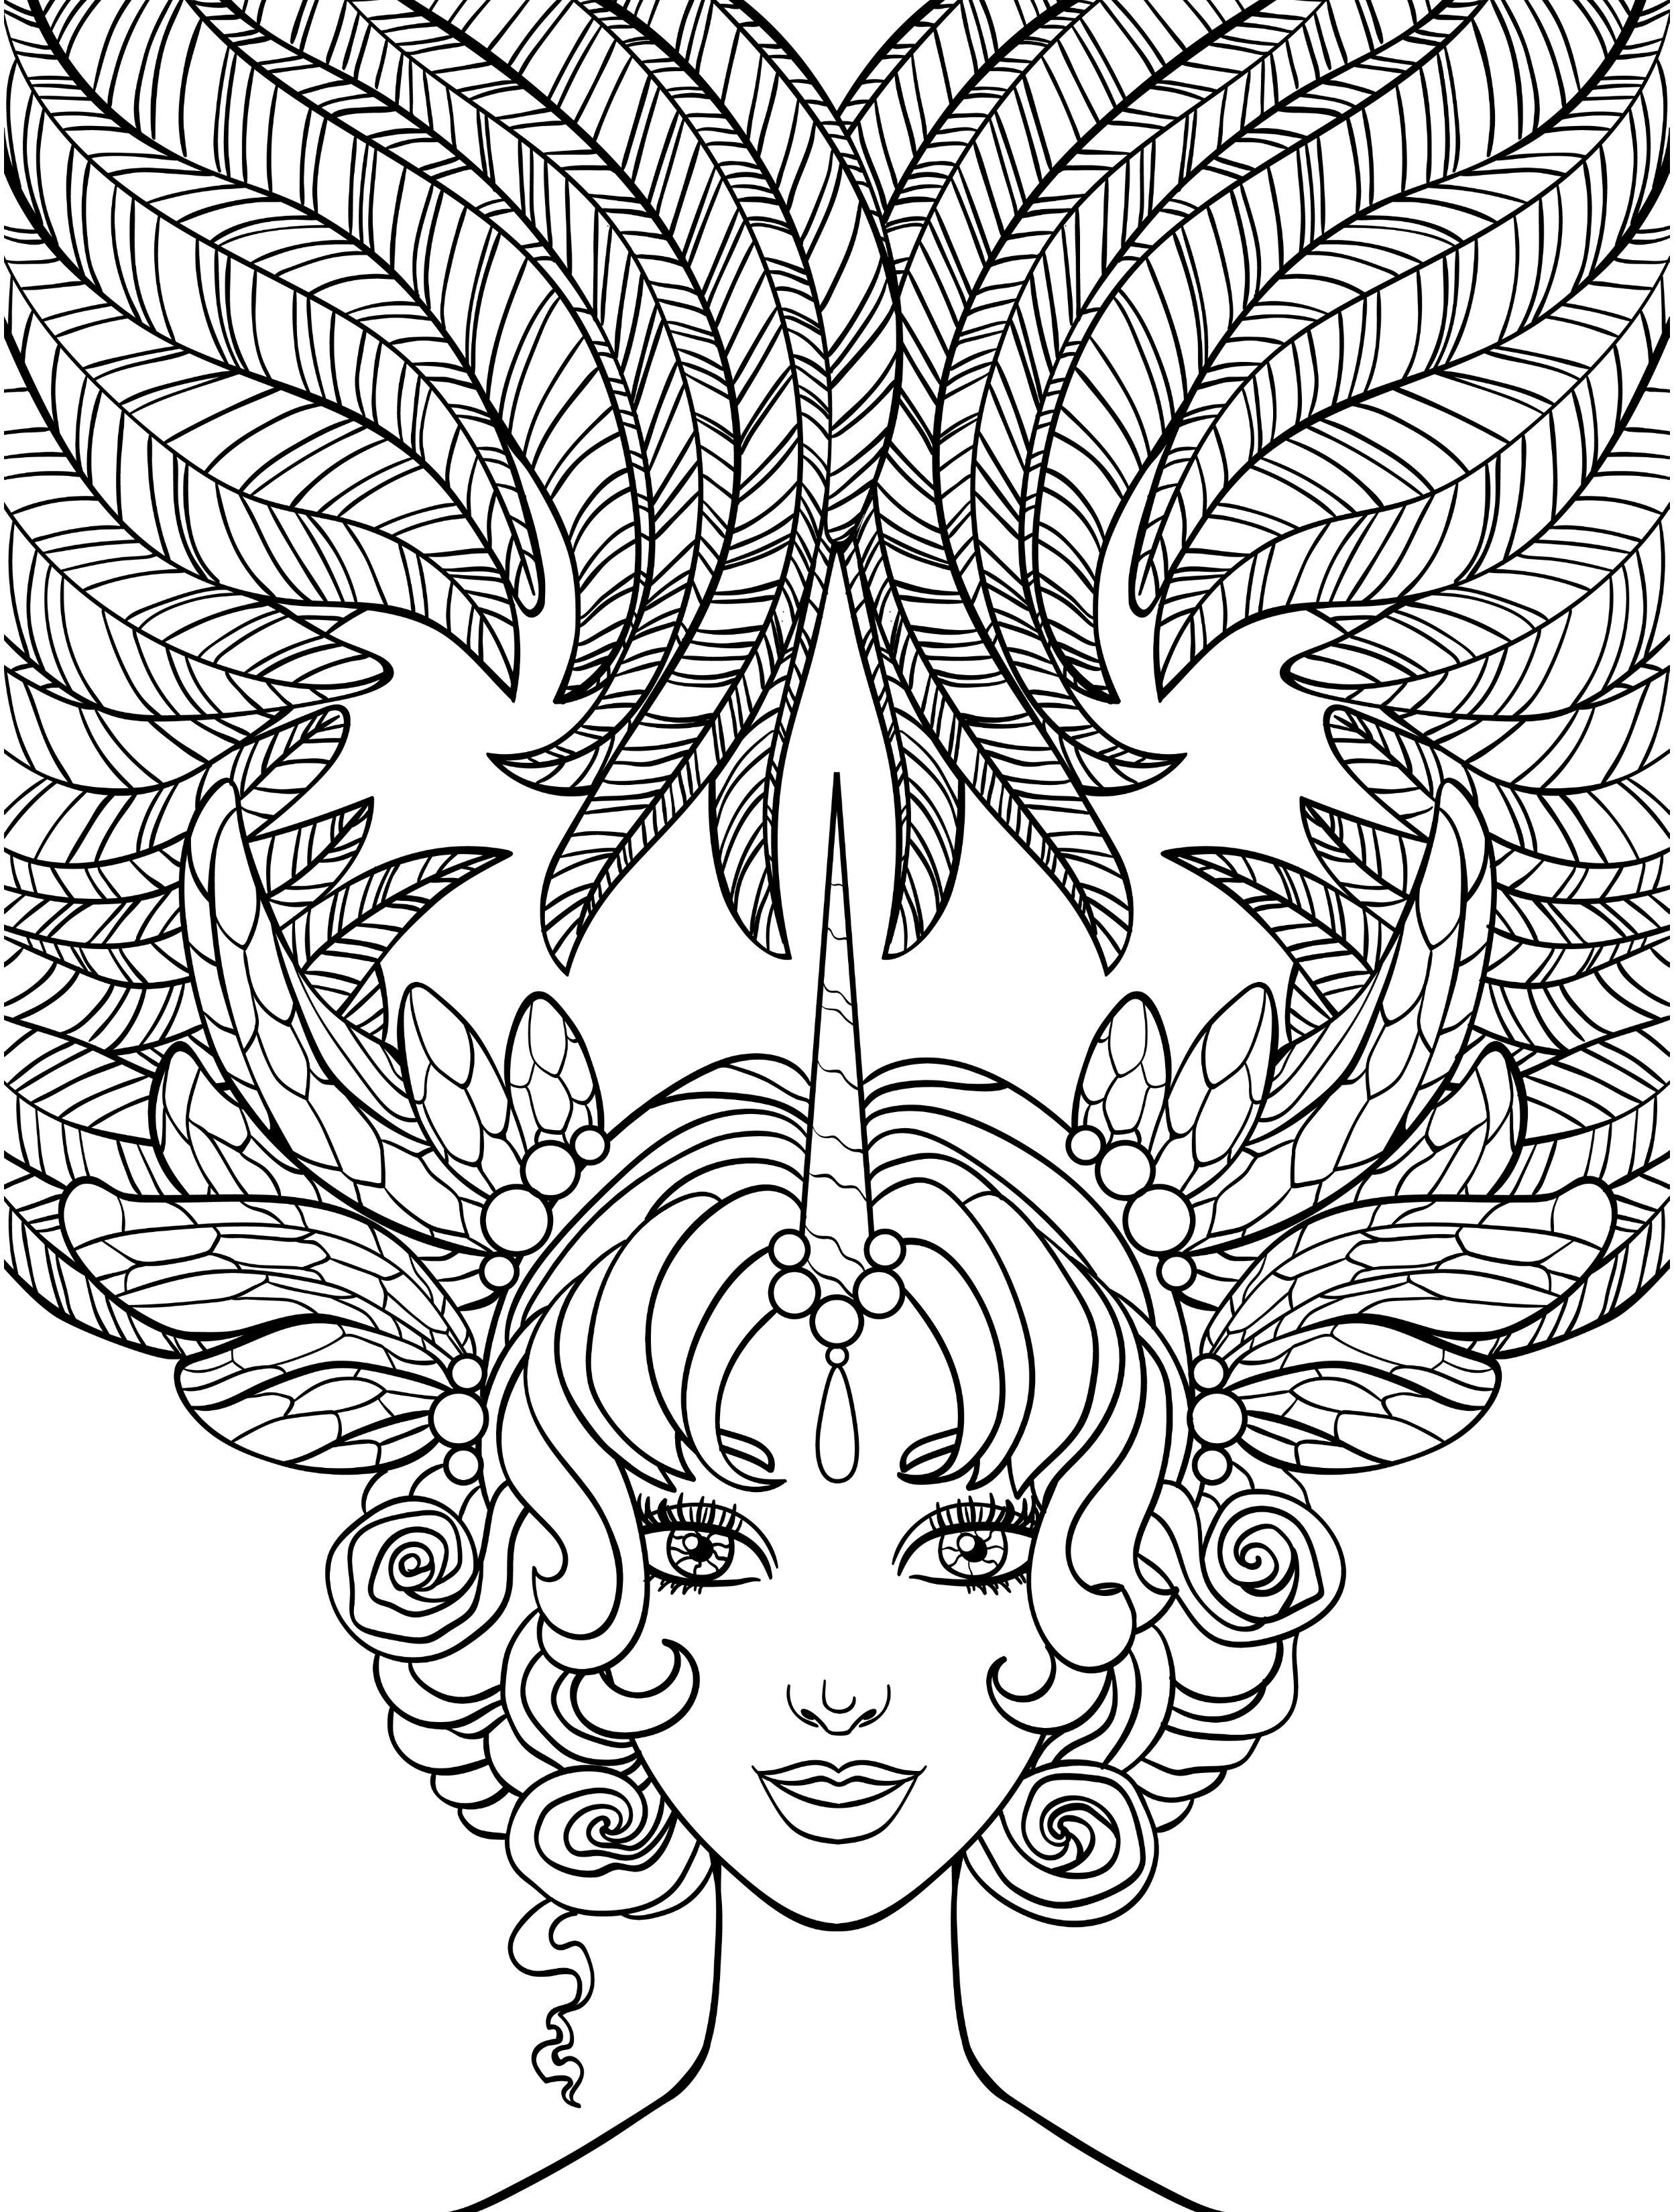 10 crazy hair adult coloring pages - Hair Coloring Pages